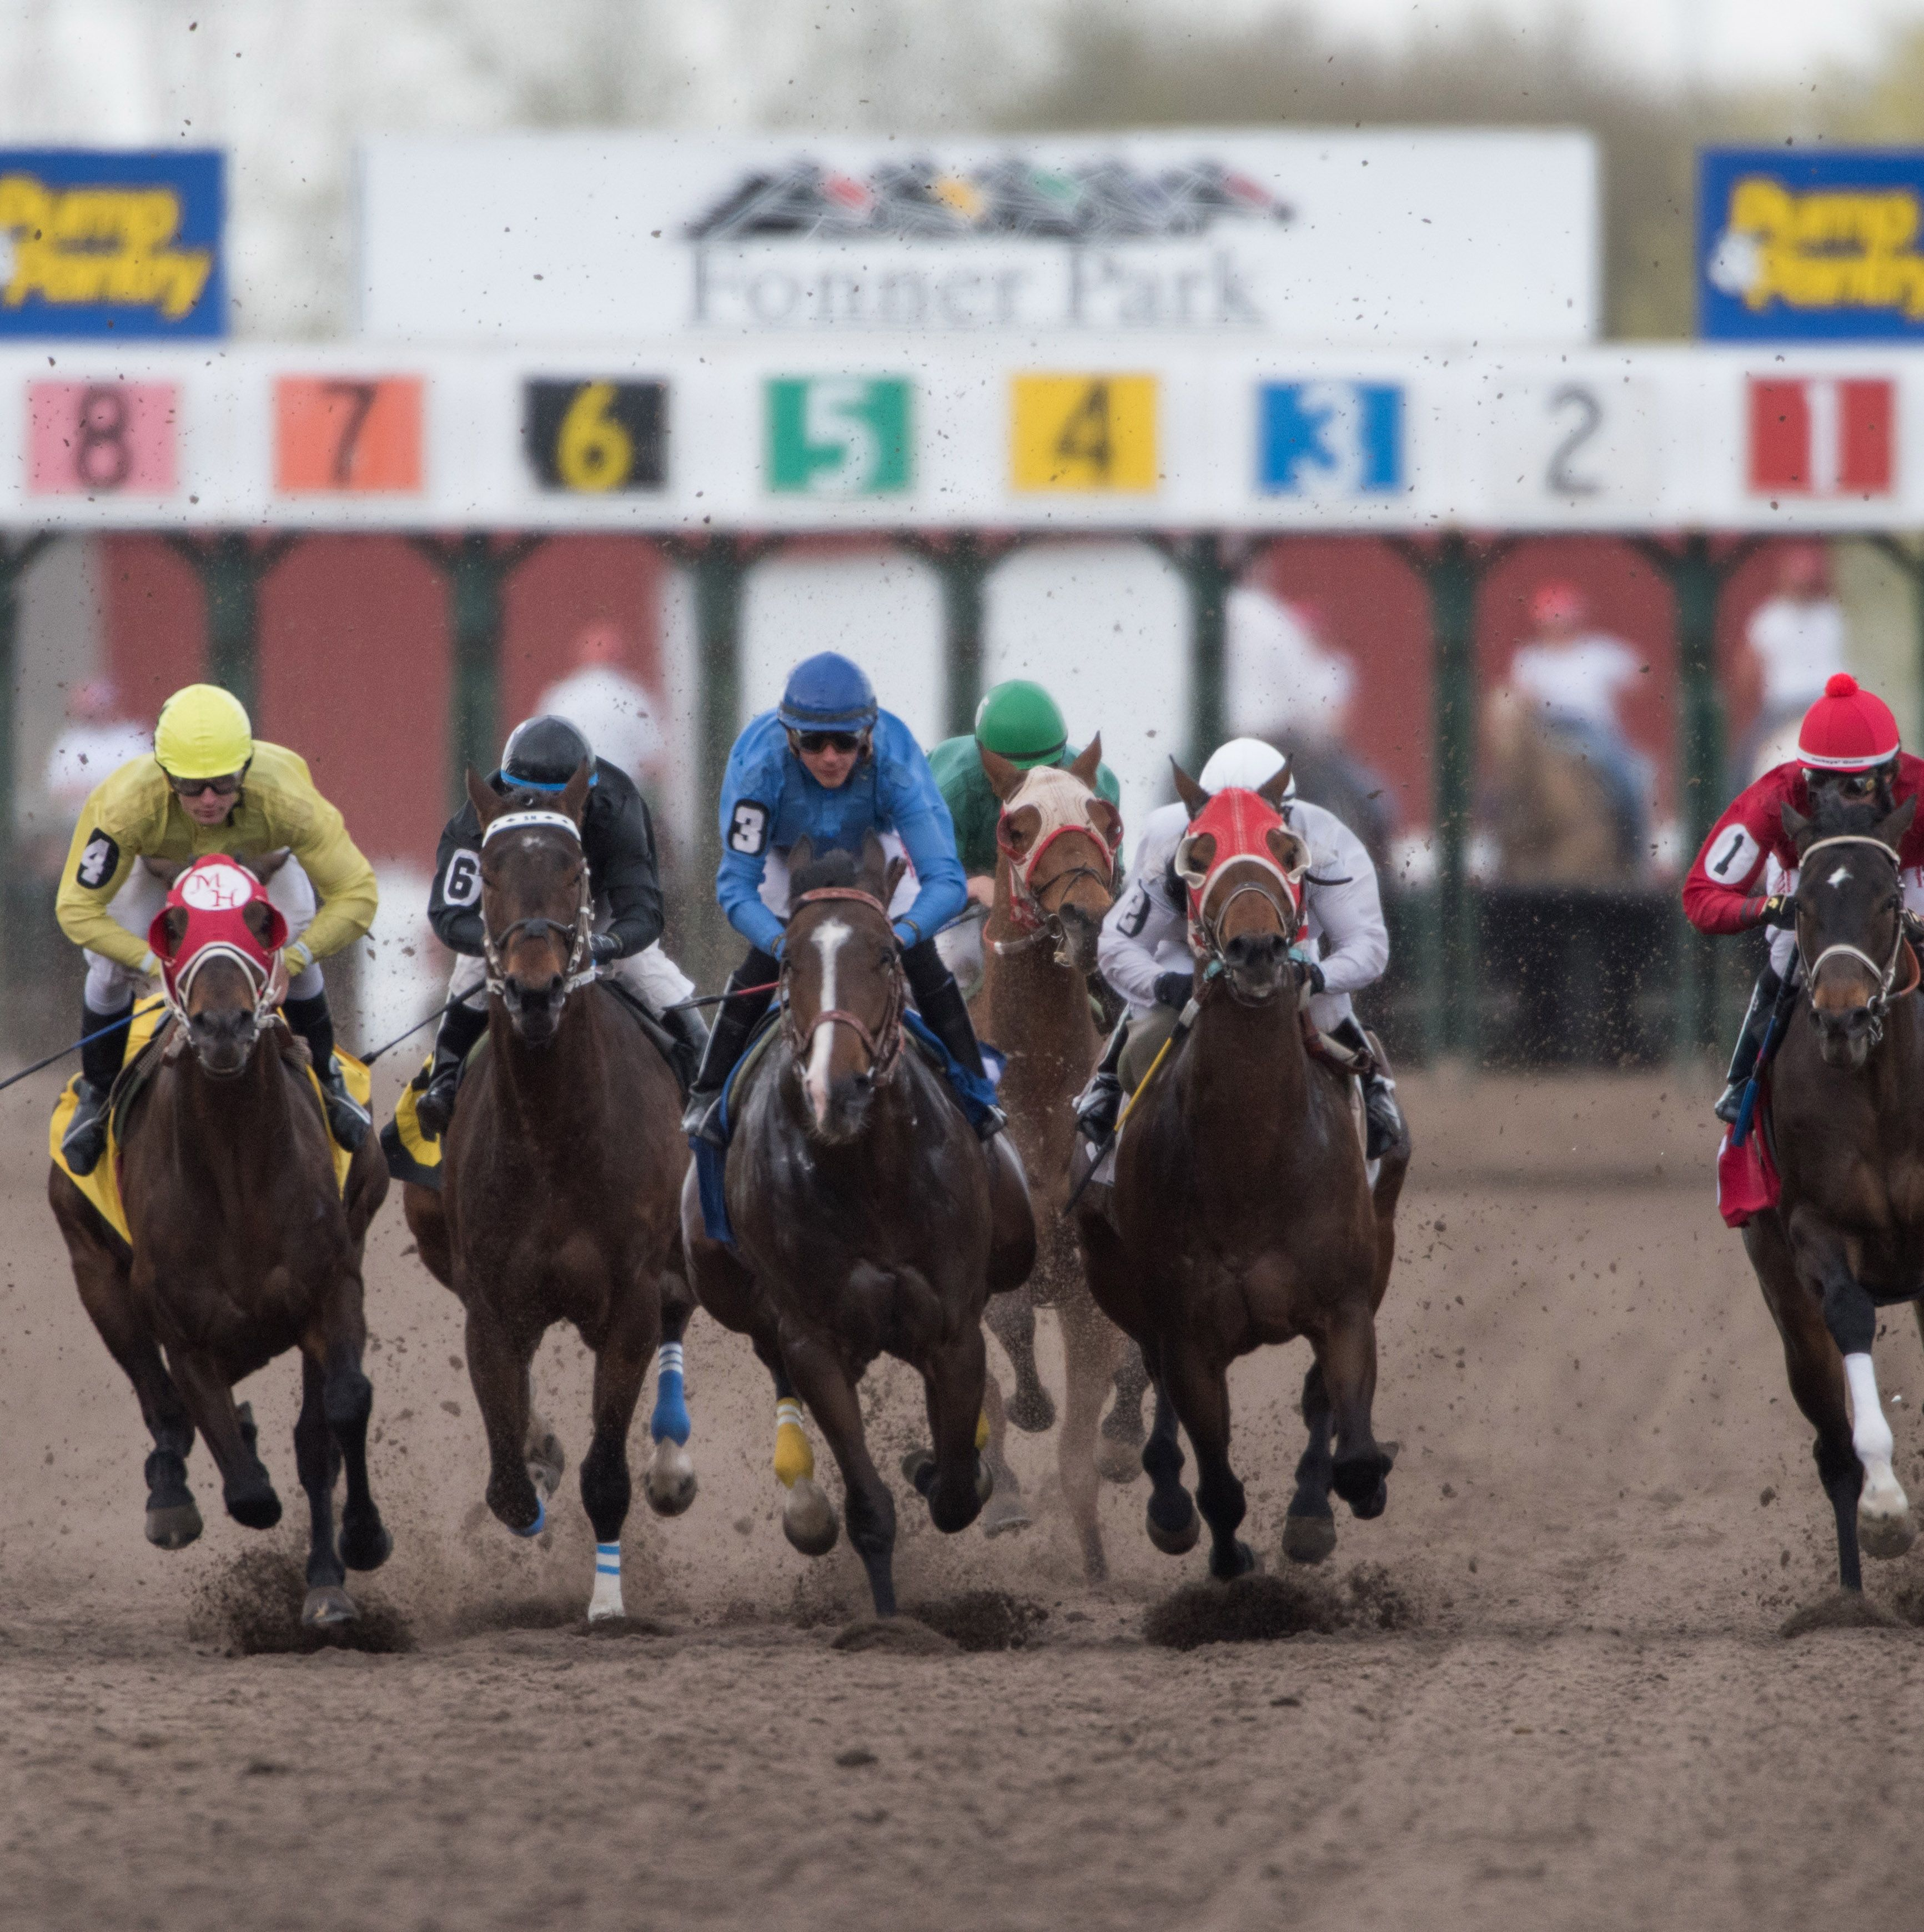 Live Thoroughbred races have thundered around the track at Fonner Park for more than 60 years.